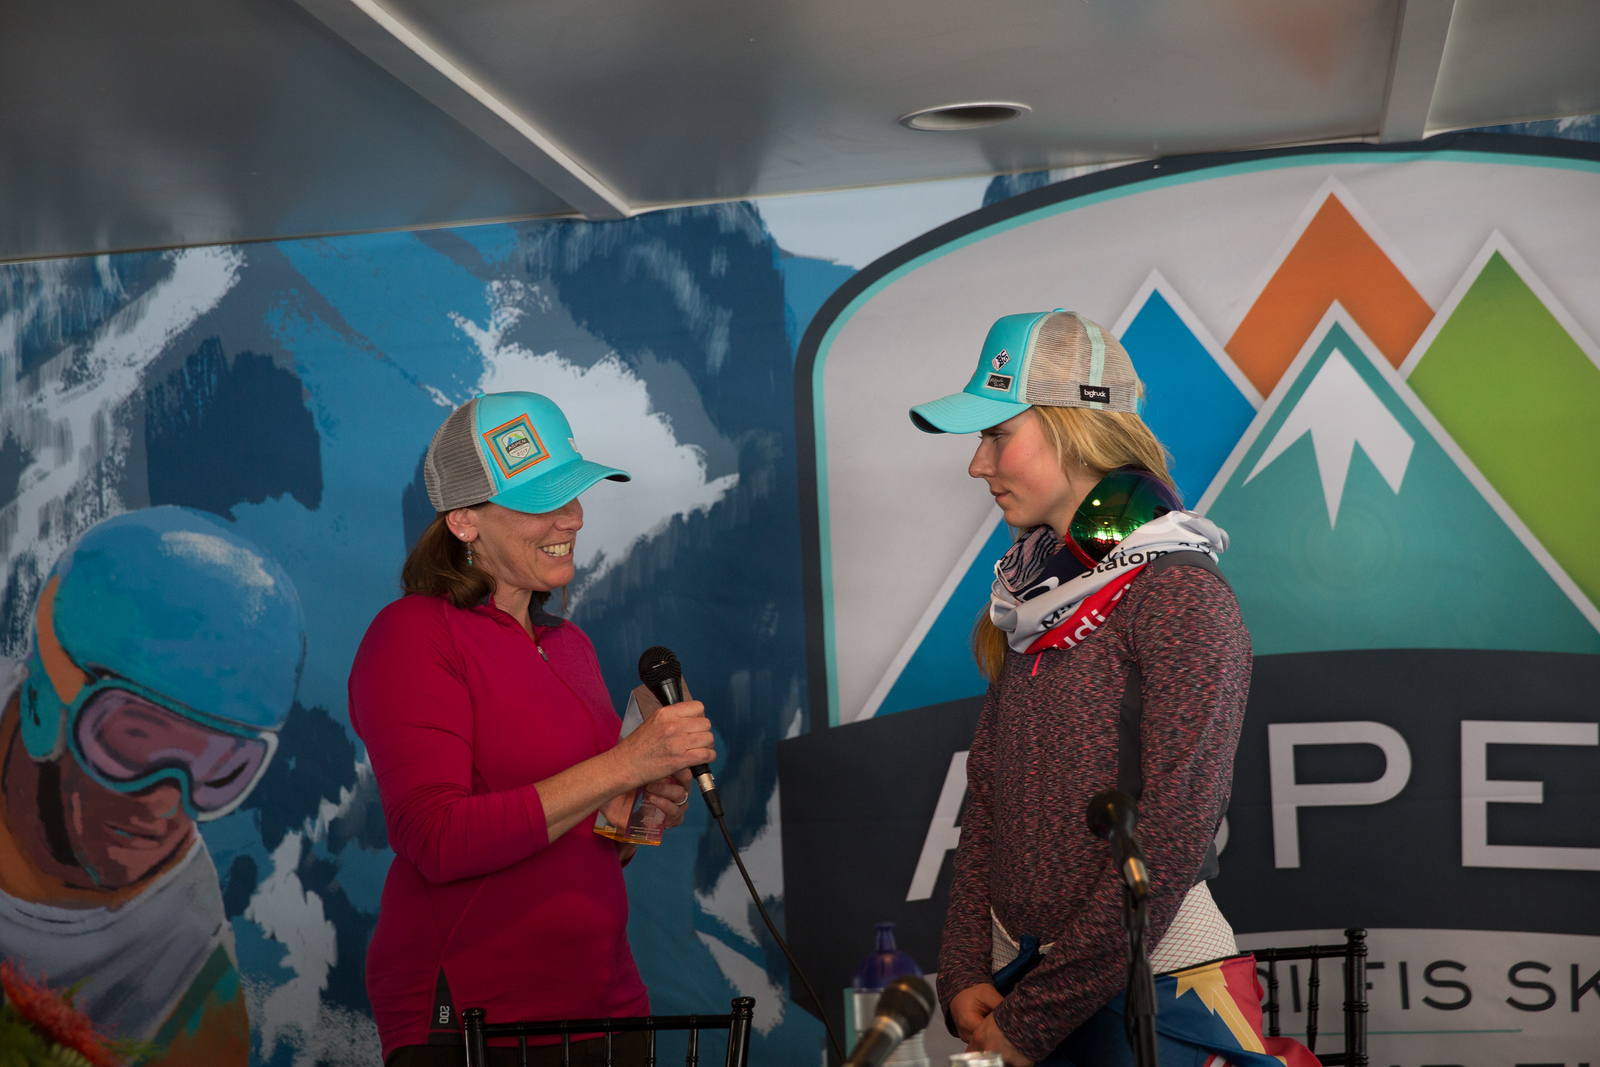 North American Snowsports Journalists Association skier of year trophy awarded to Mikaela Shiffrin 2017 Audi FIS Ski World Cup finals in Aspen, CO. Photo: U.S. Ski Team